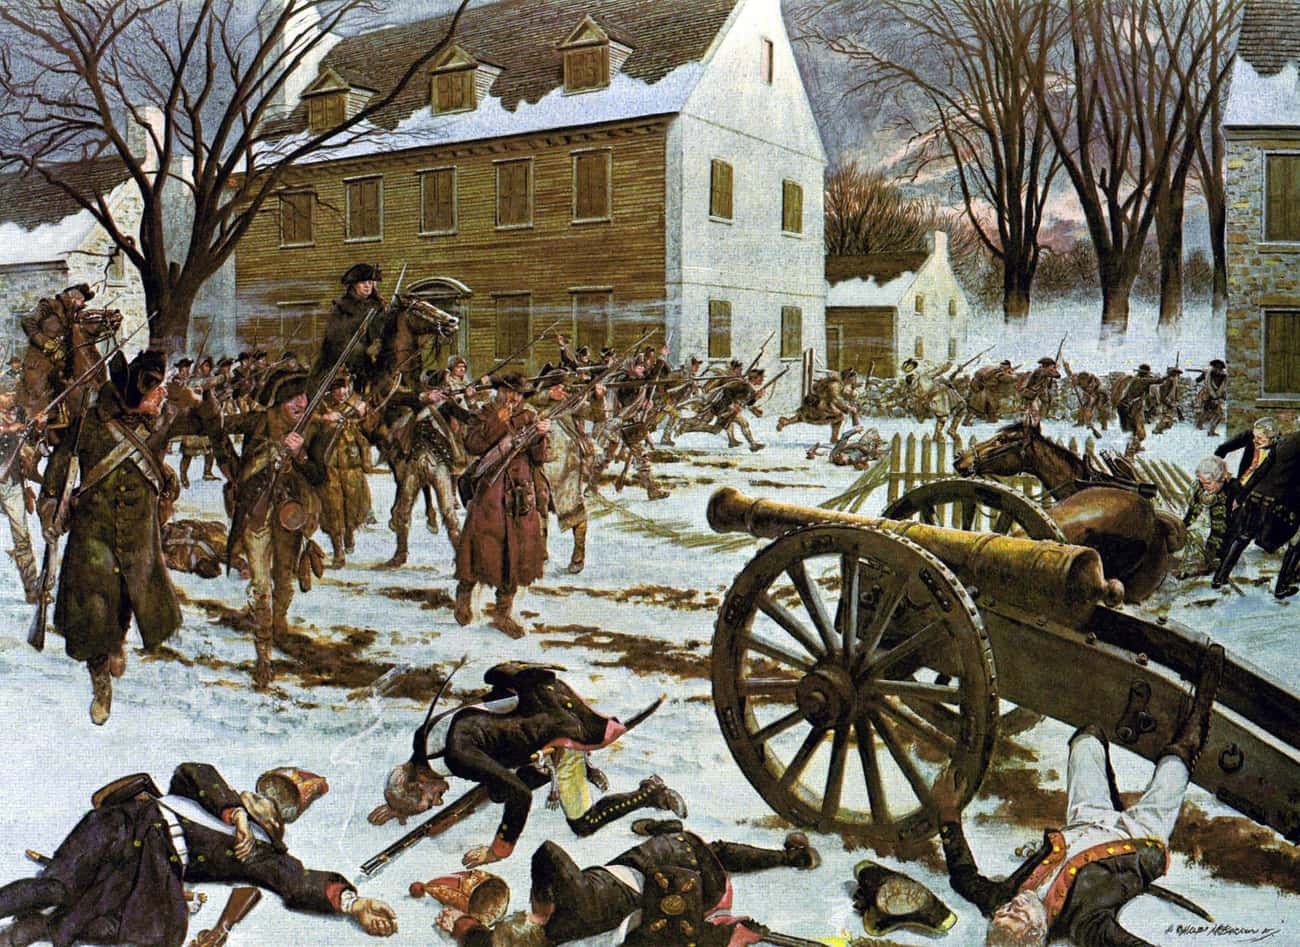 Battle Of Trenton is listed (or ranked) 2 on the list The Best American Revolution Paintings